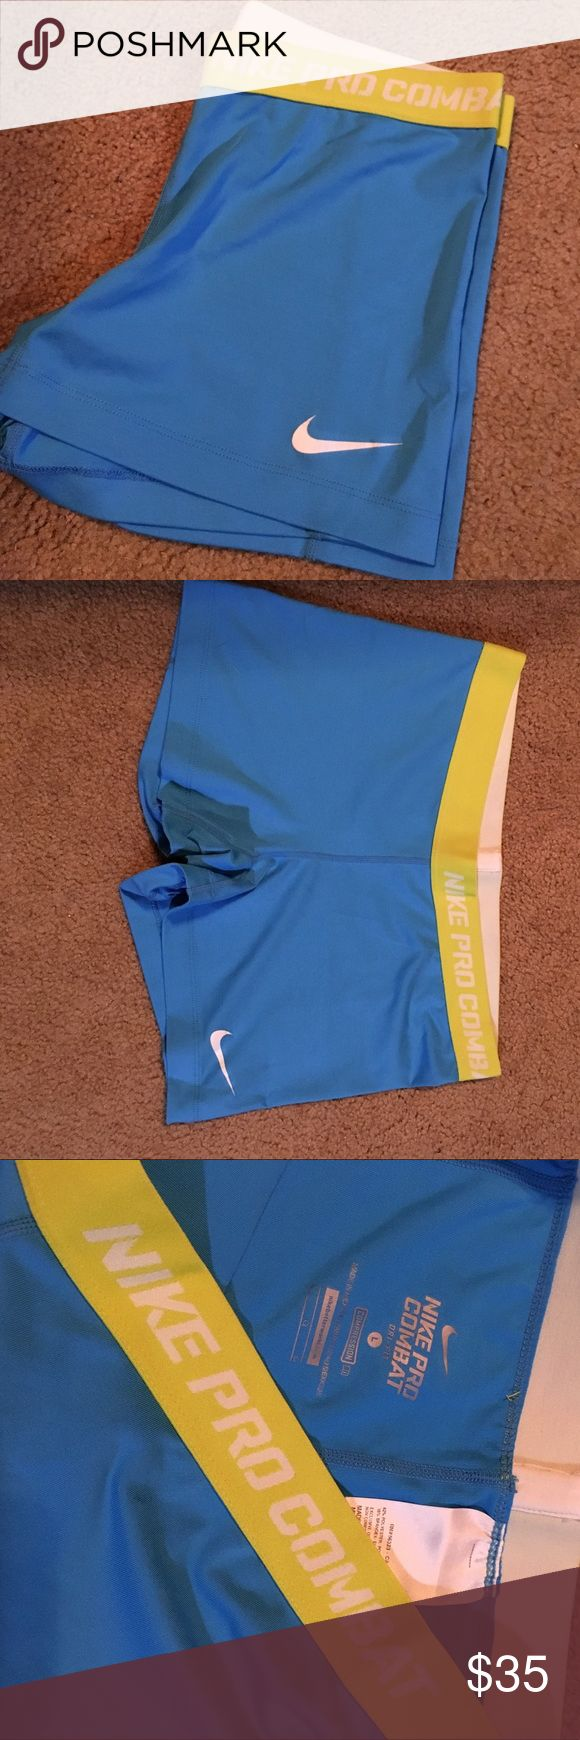 NIKE Compression Shorts - Women's Women's Blue and Neon Yellow Dry-Fit NIKE PRO COMBAT Compression Shorts. Size Large. Worn twice - still in great condition! Nike Shorts